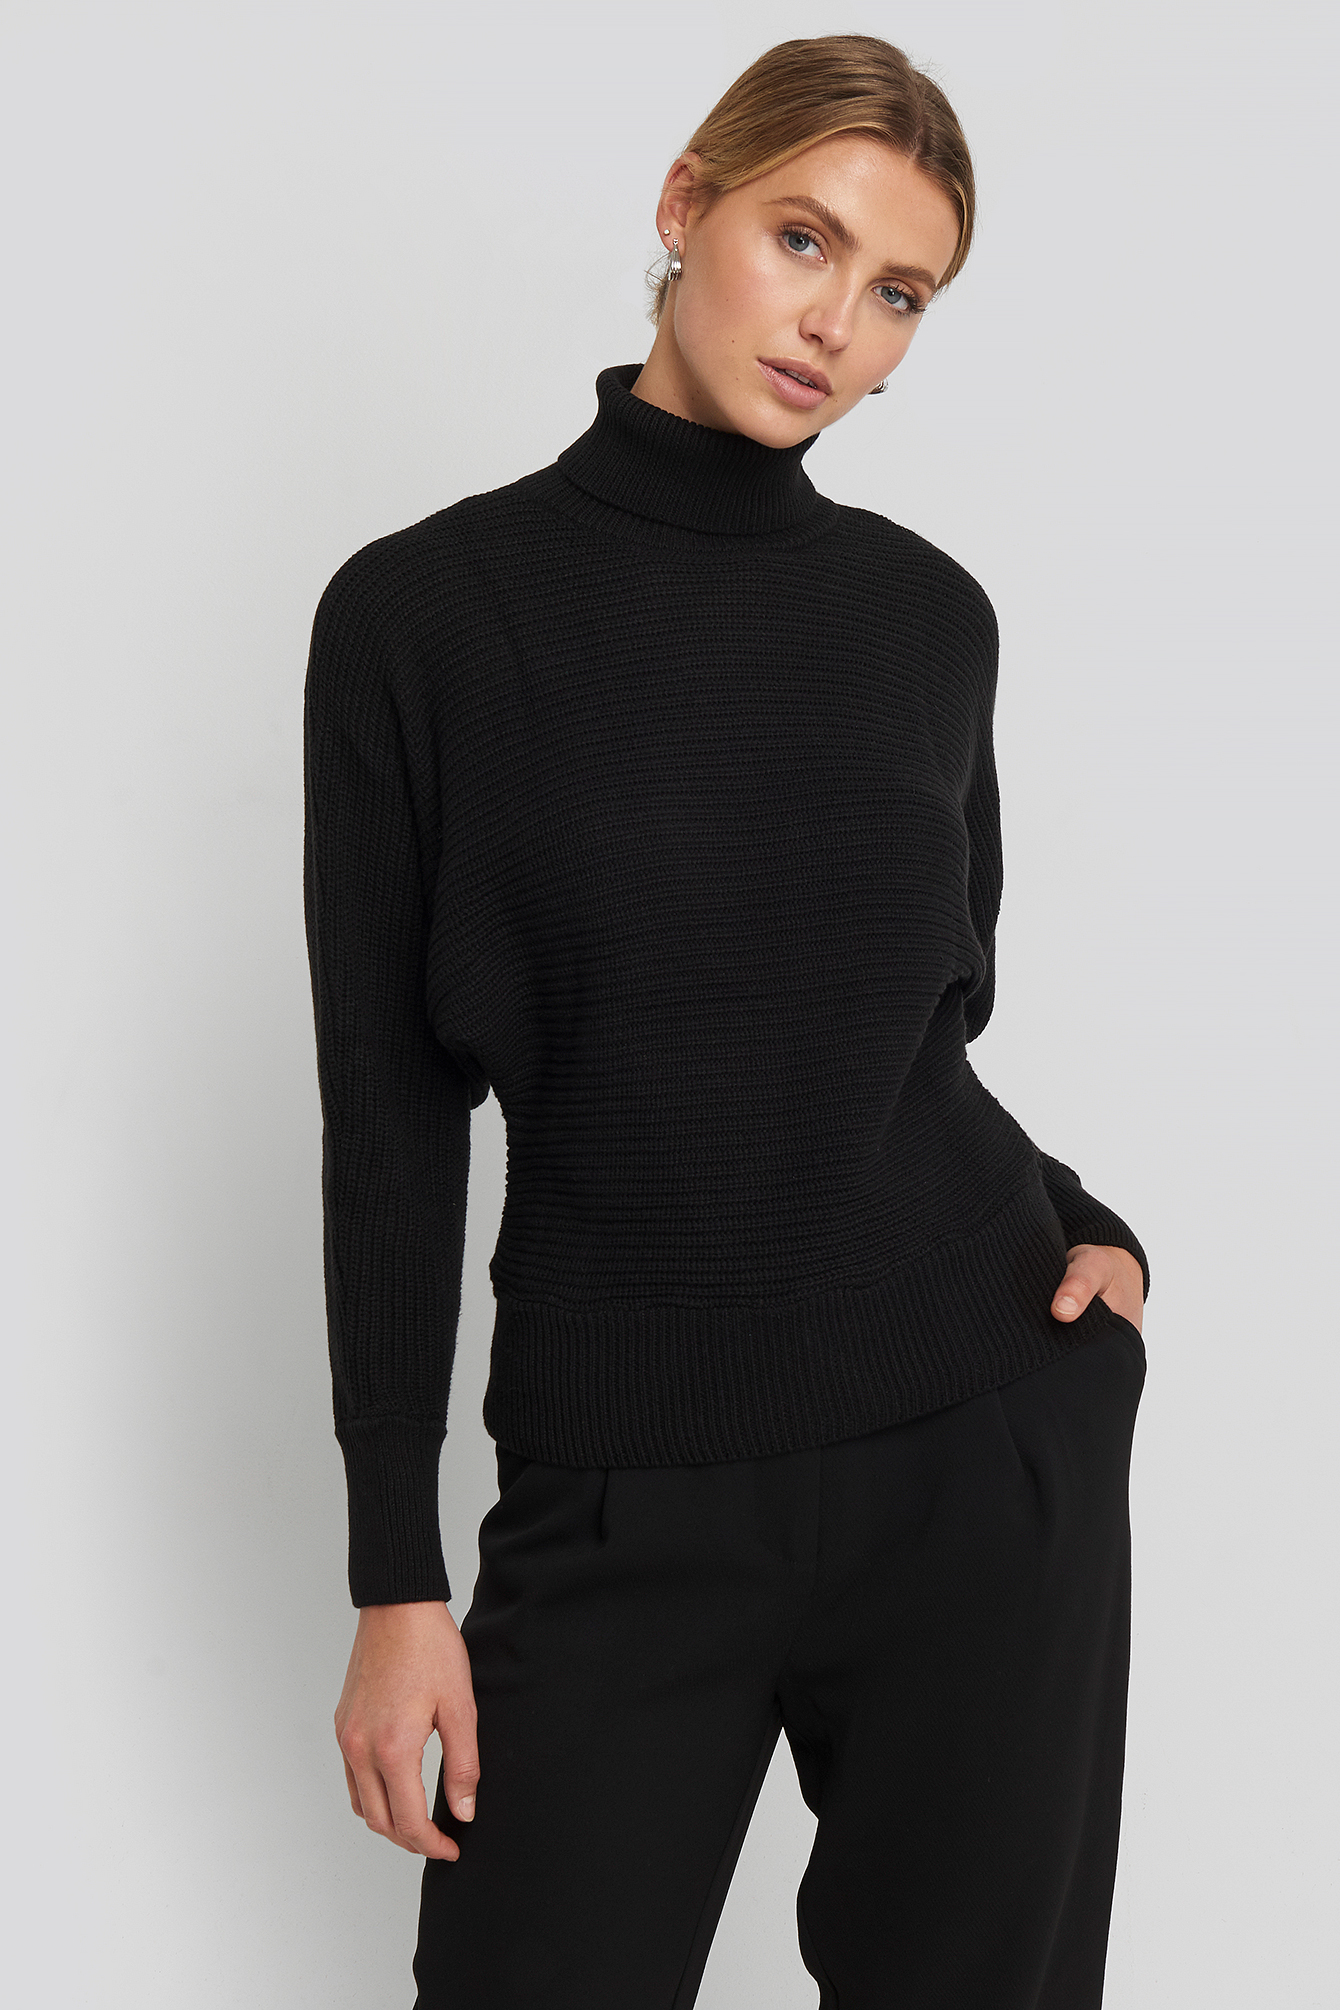 Folded Knitted Sweater Svart by Na Kd